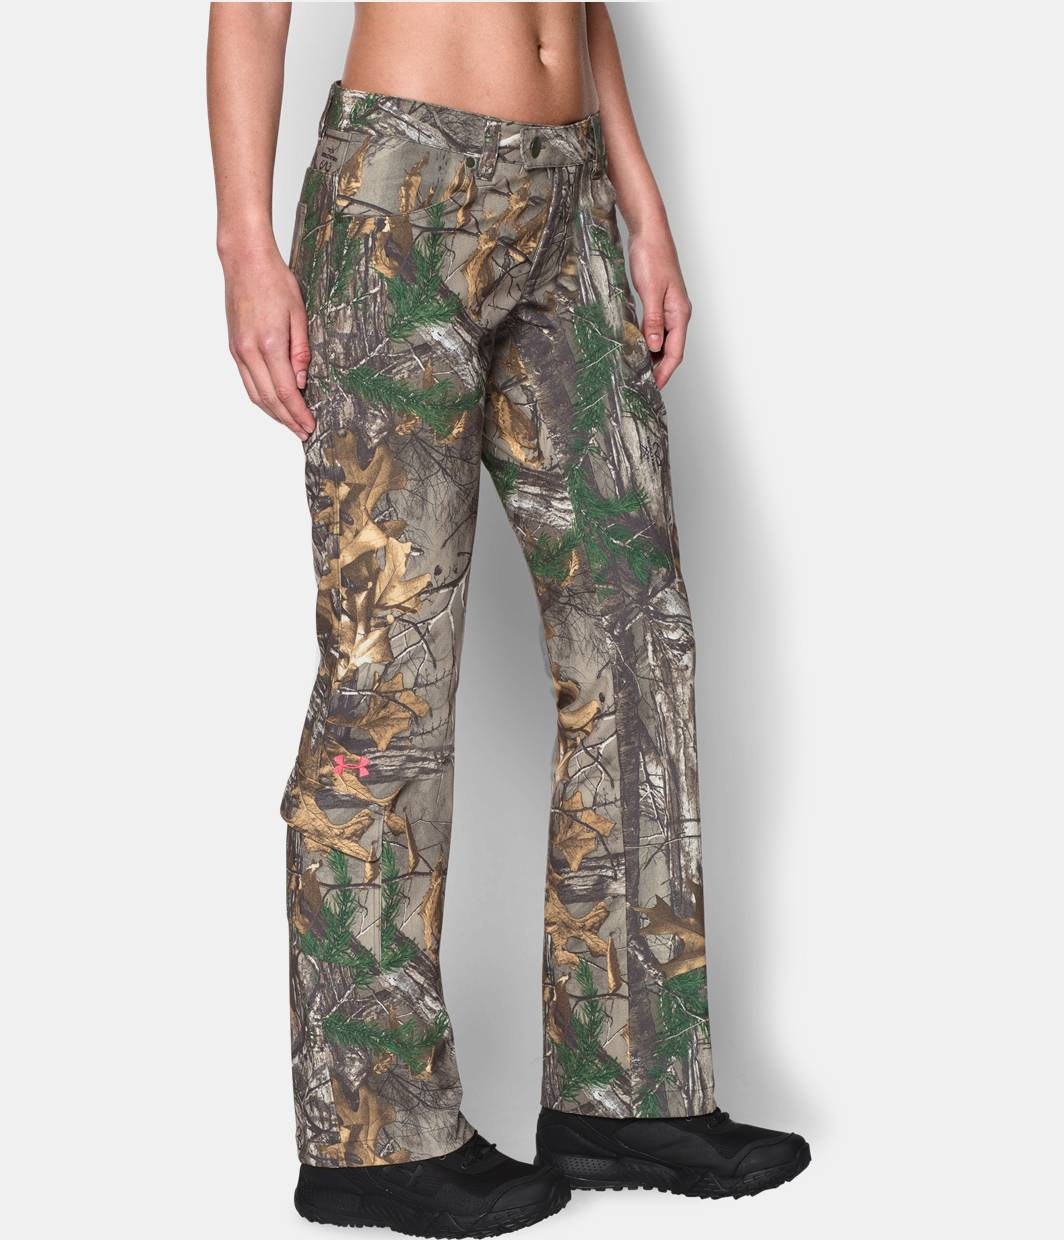 Wonderful Women39s Camo Army Cargo Skinny Pants New With Tag At Amazon Women